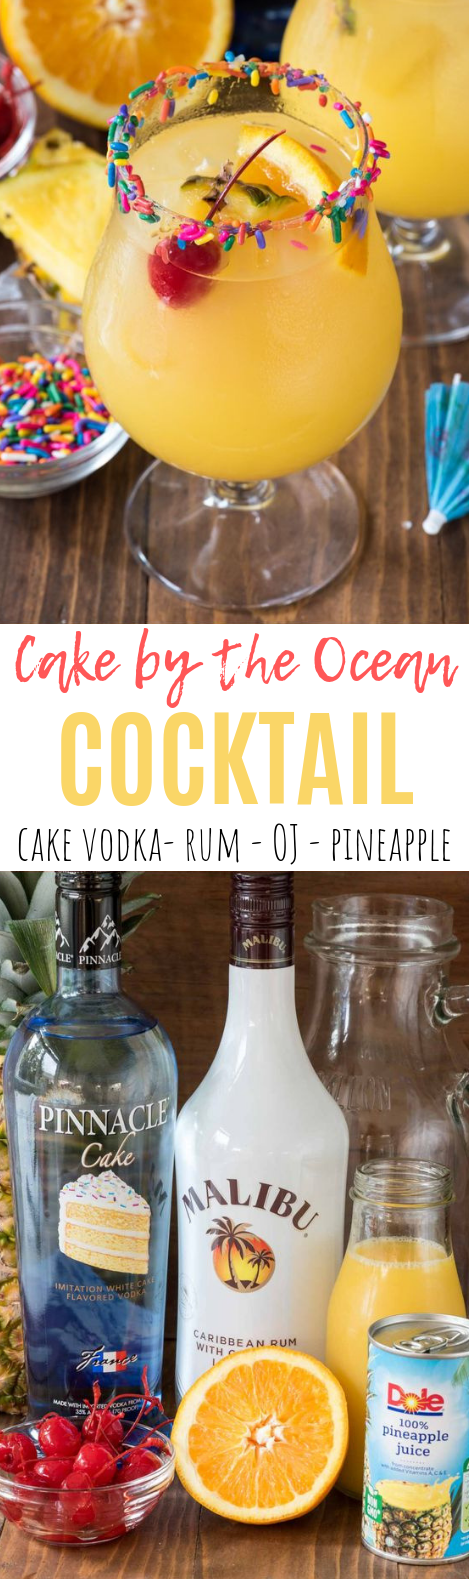 Cake by the Ocean Cocktail #summer #drink